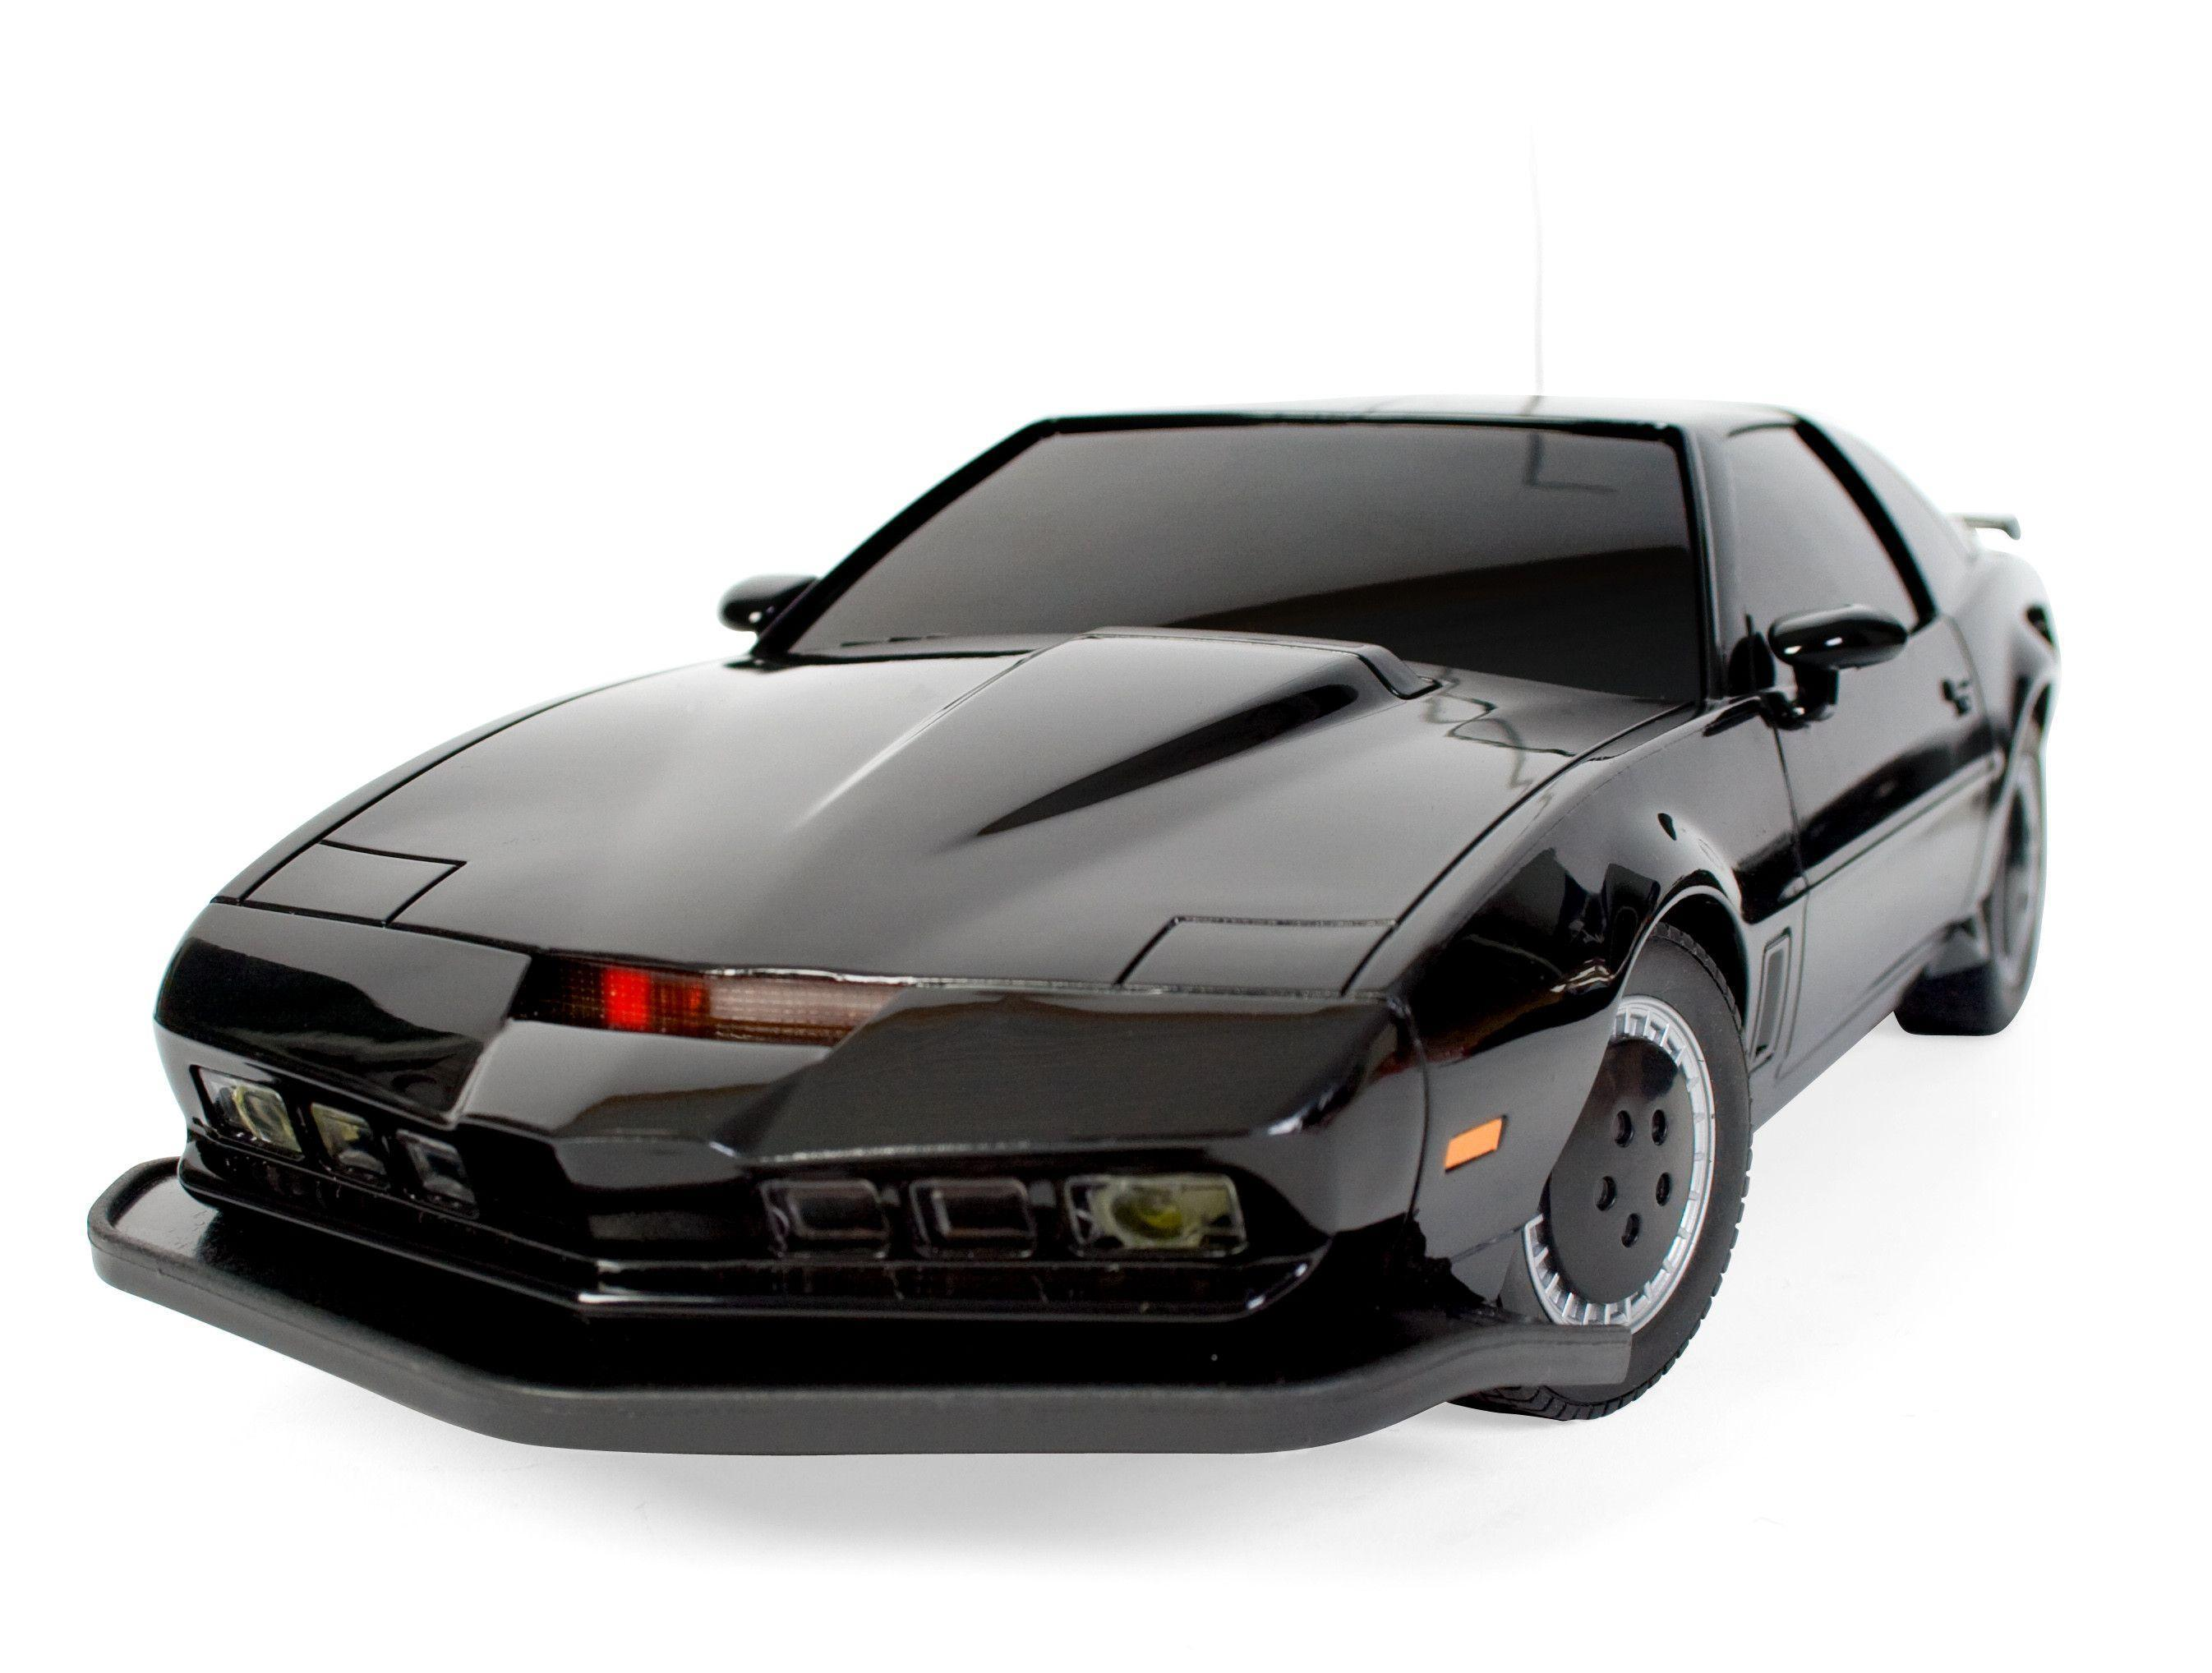 Image For > Knight Rider Car Wallpapers